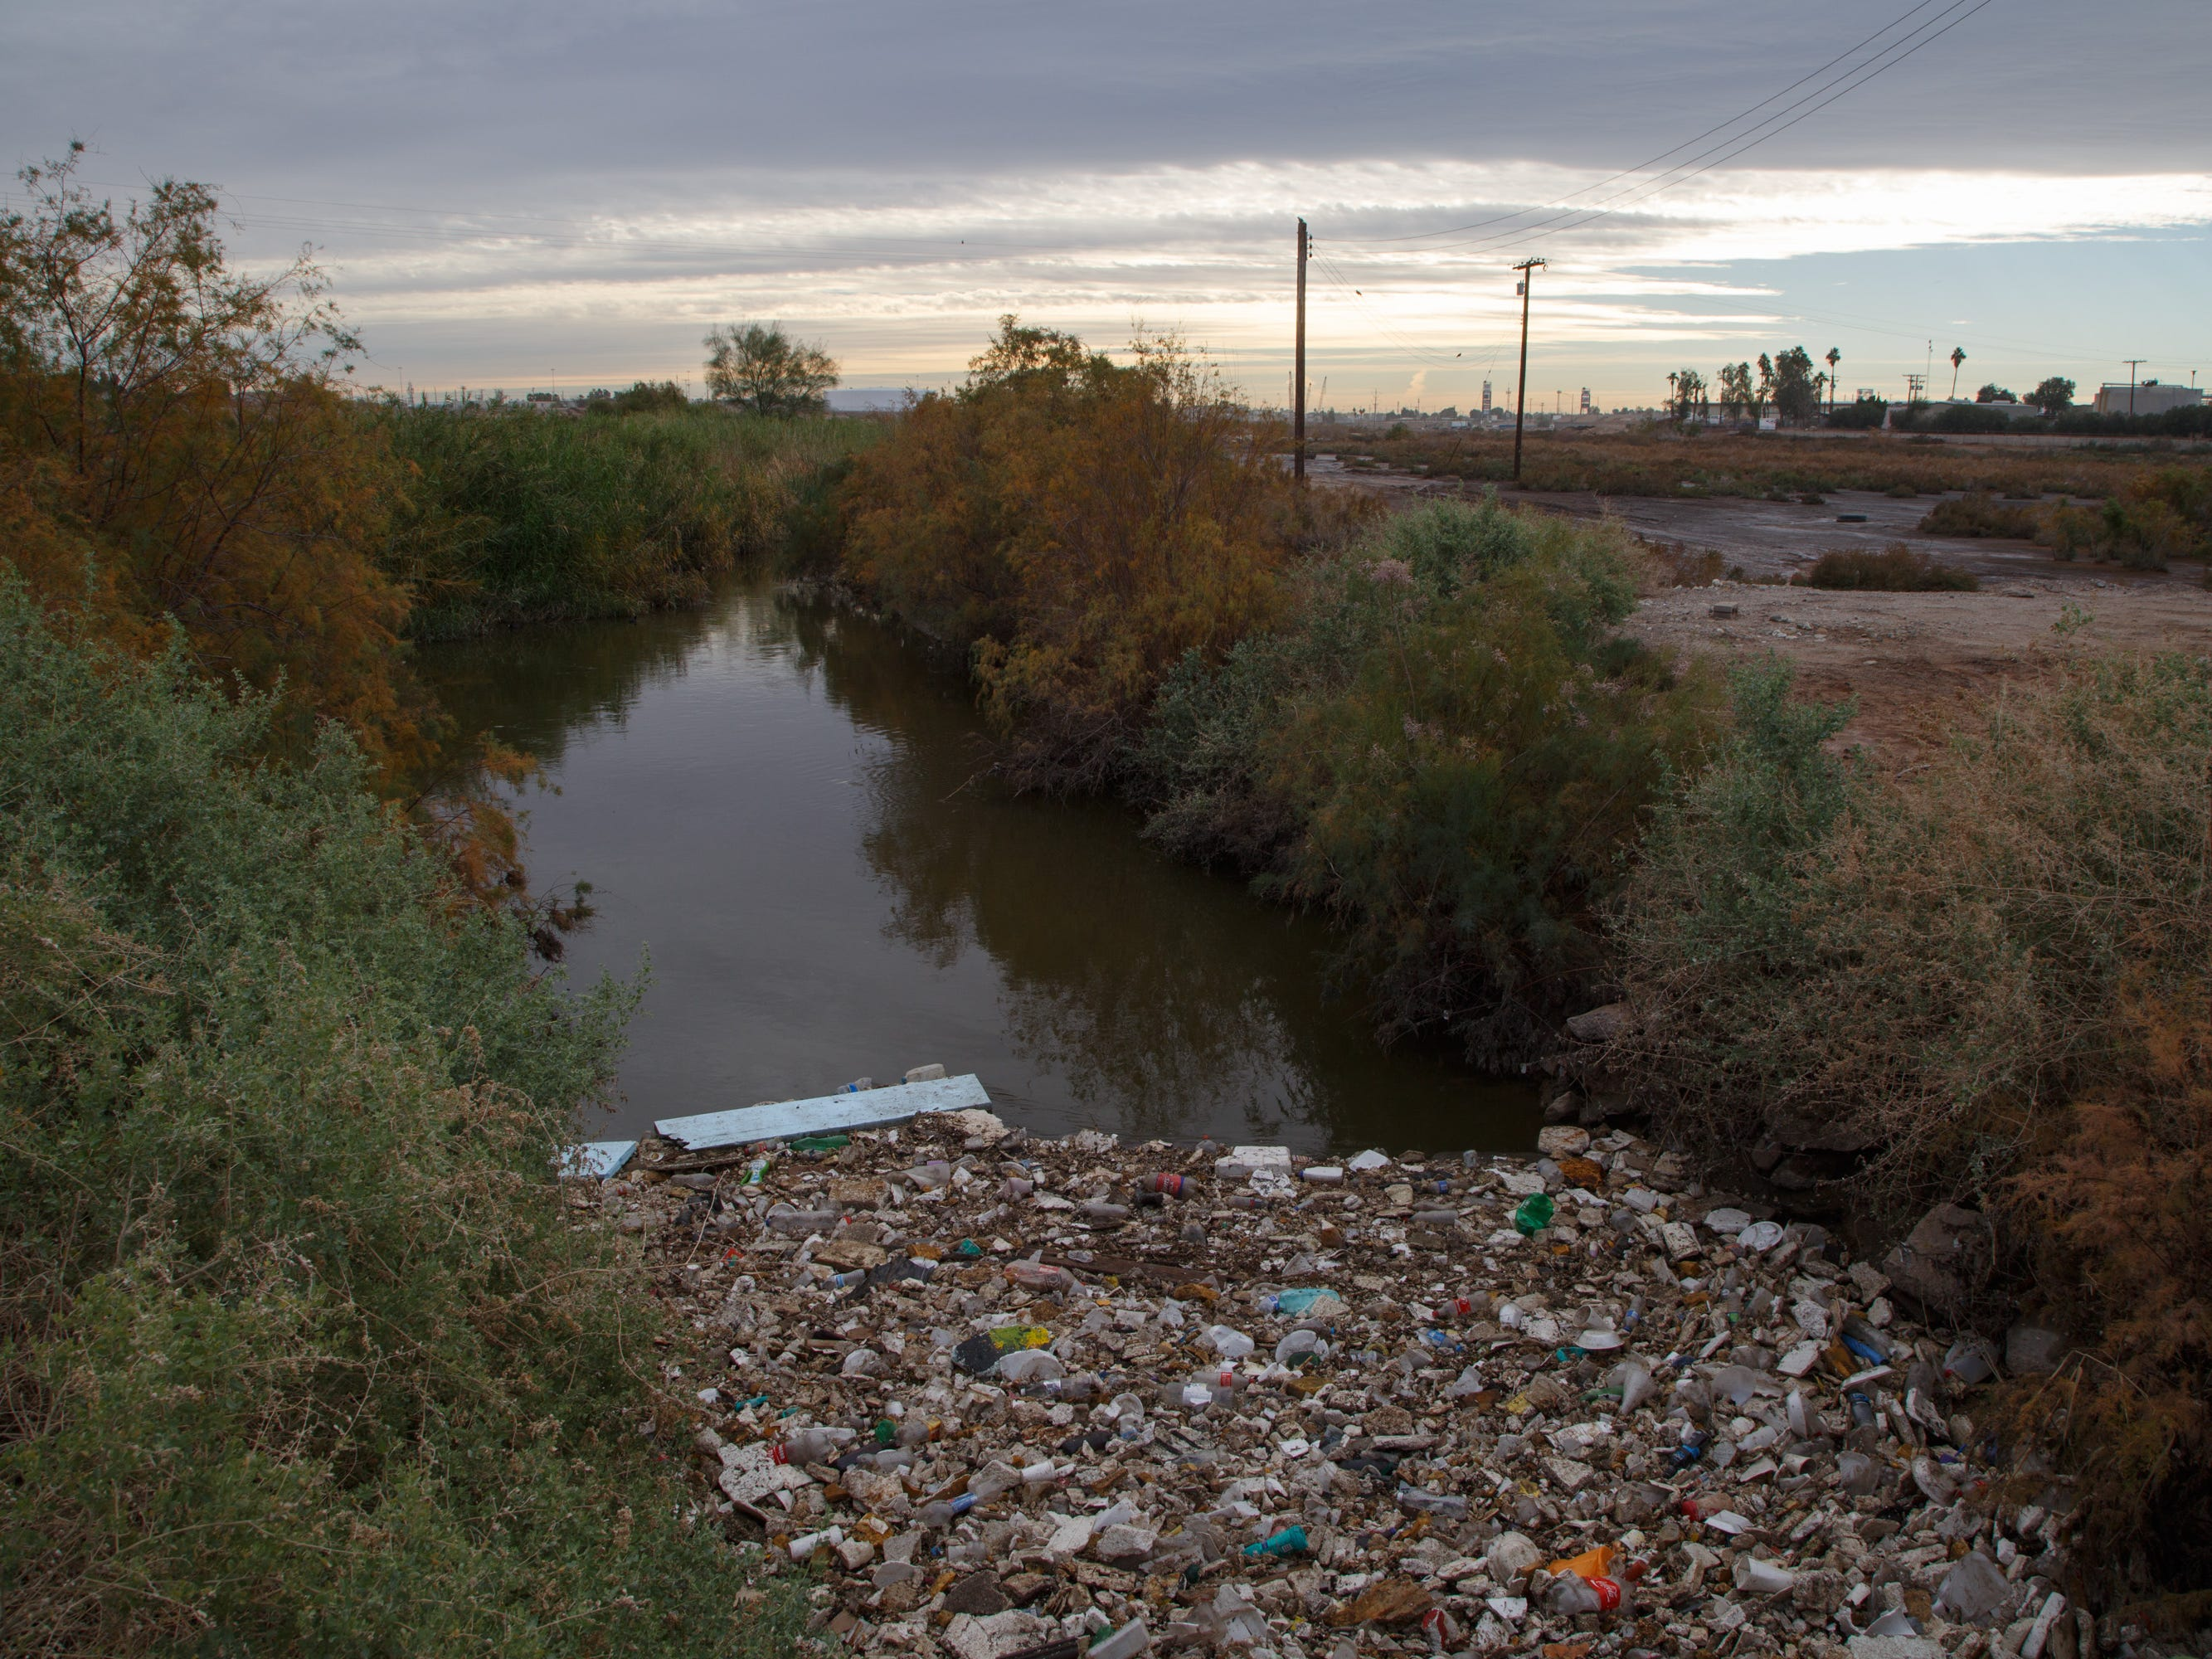 Trash collects in the New River near the border in Calexico.